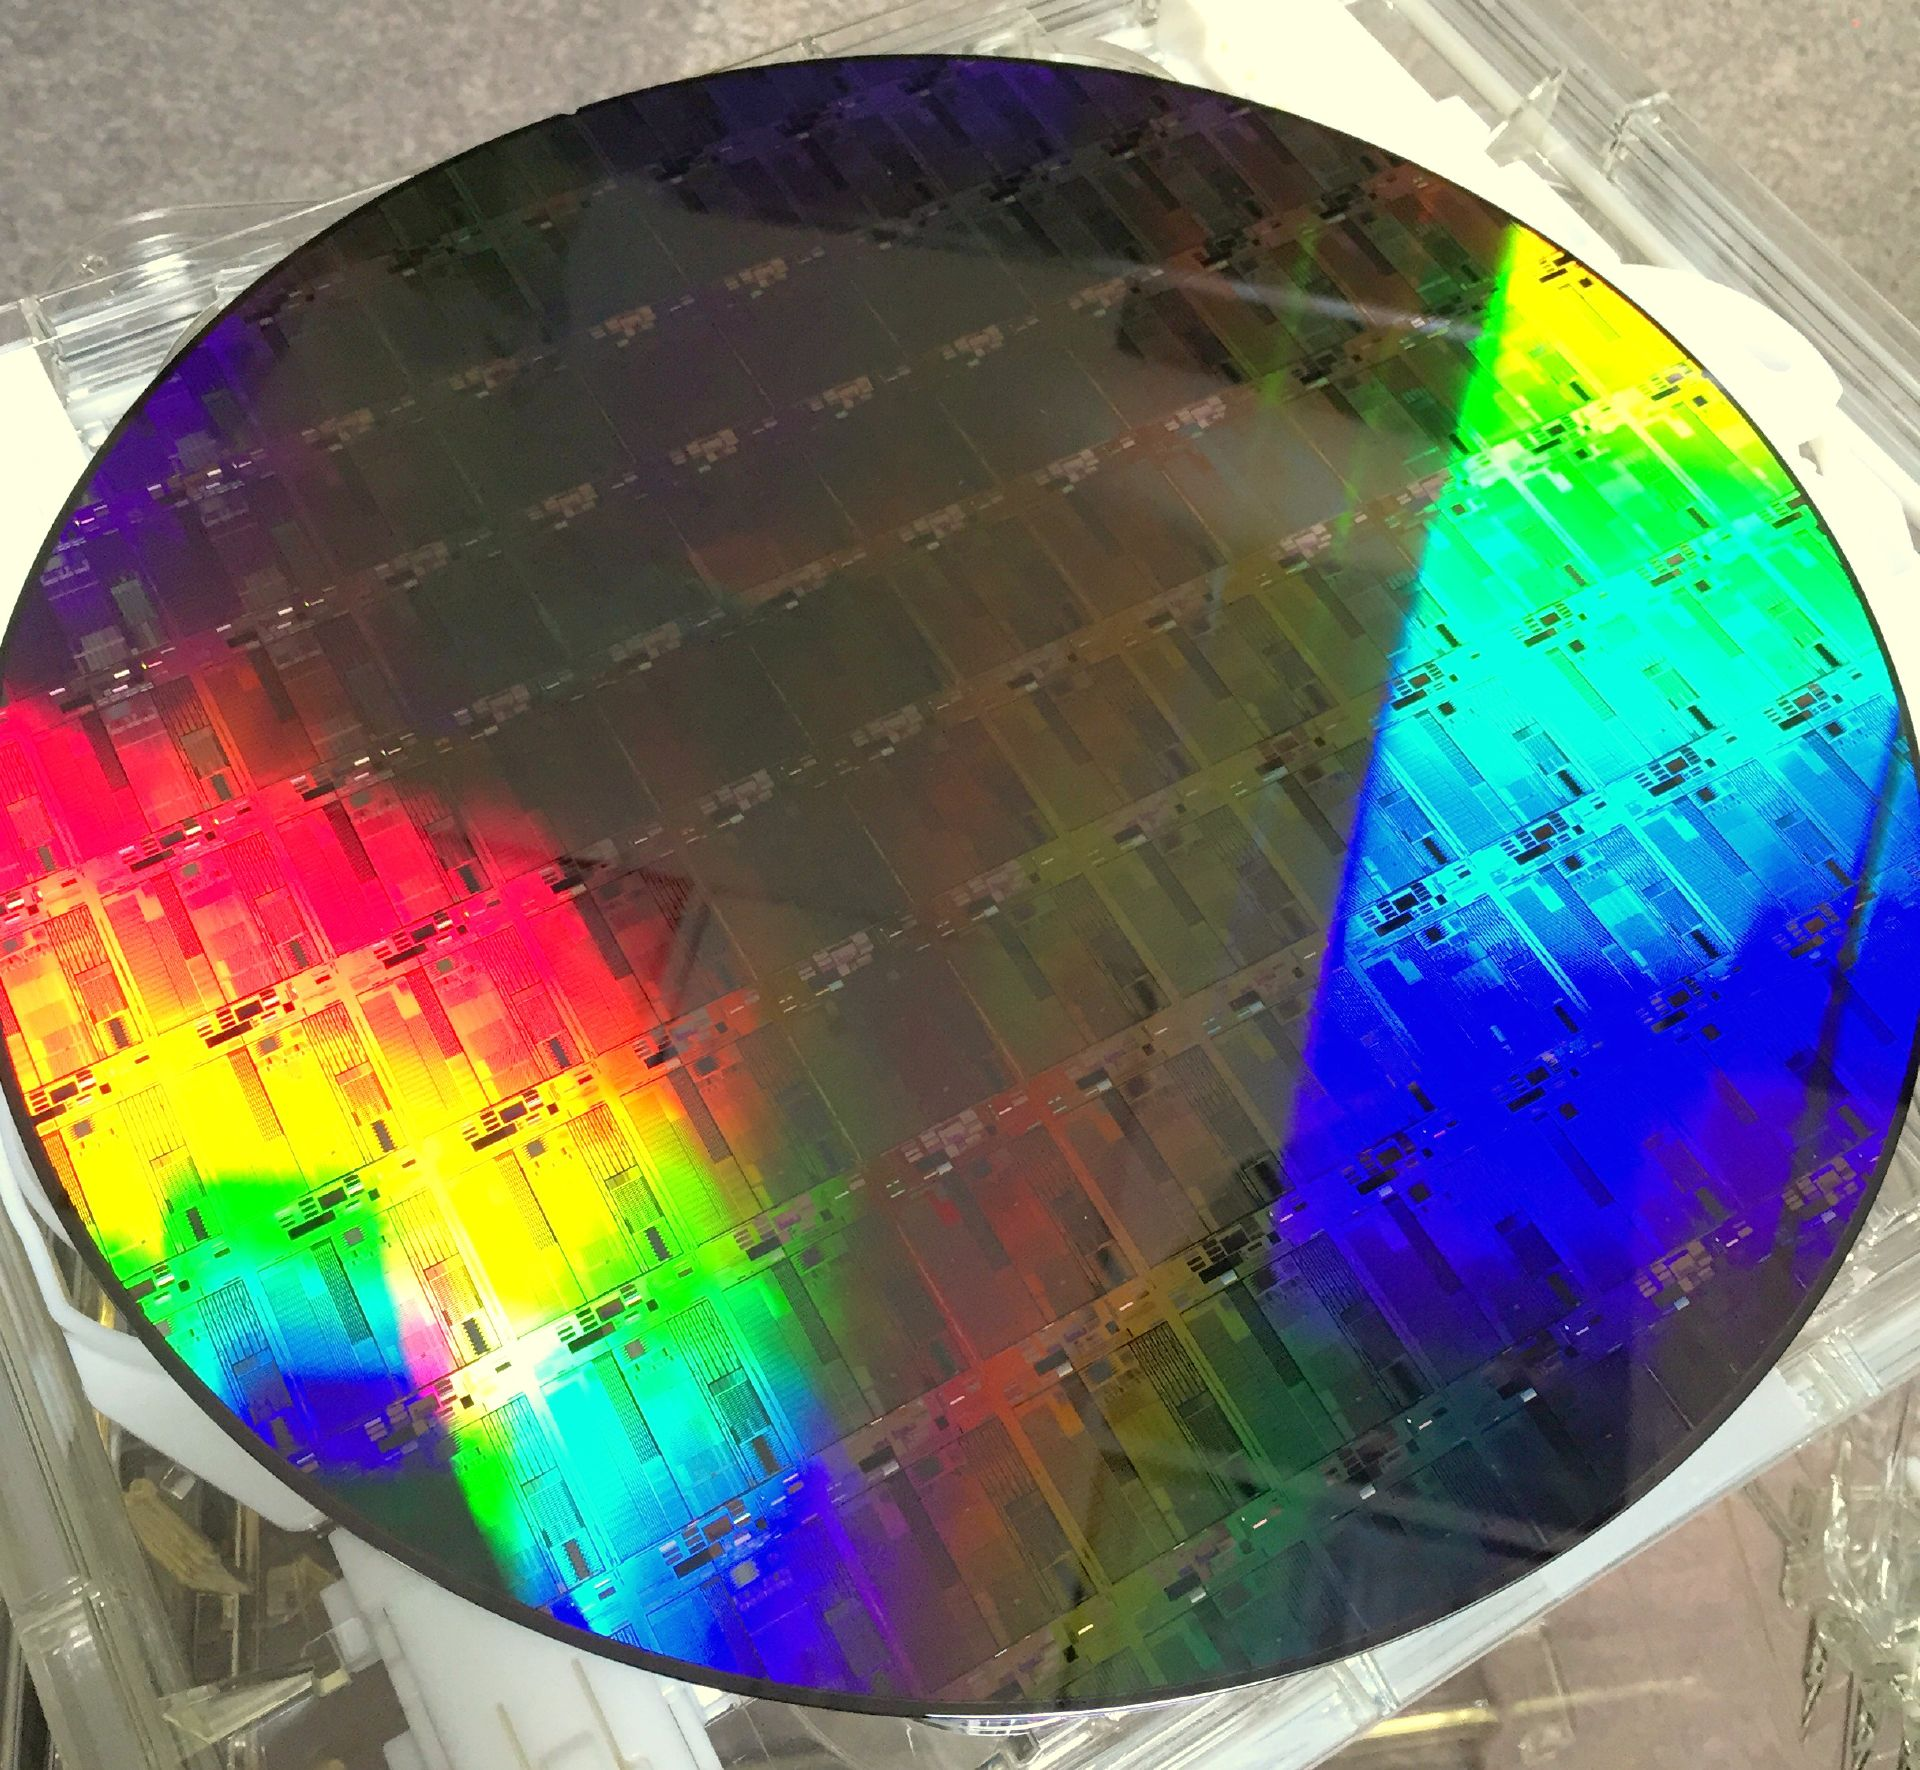 Silicon Photonics 300mm wafer